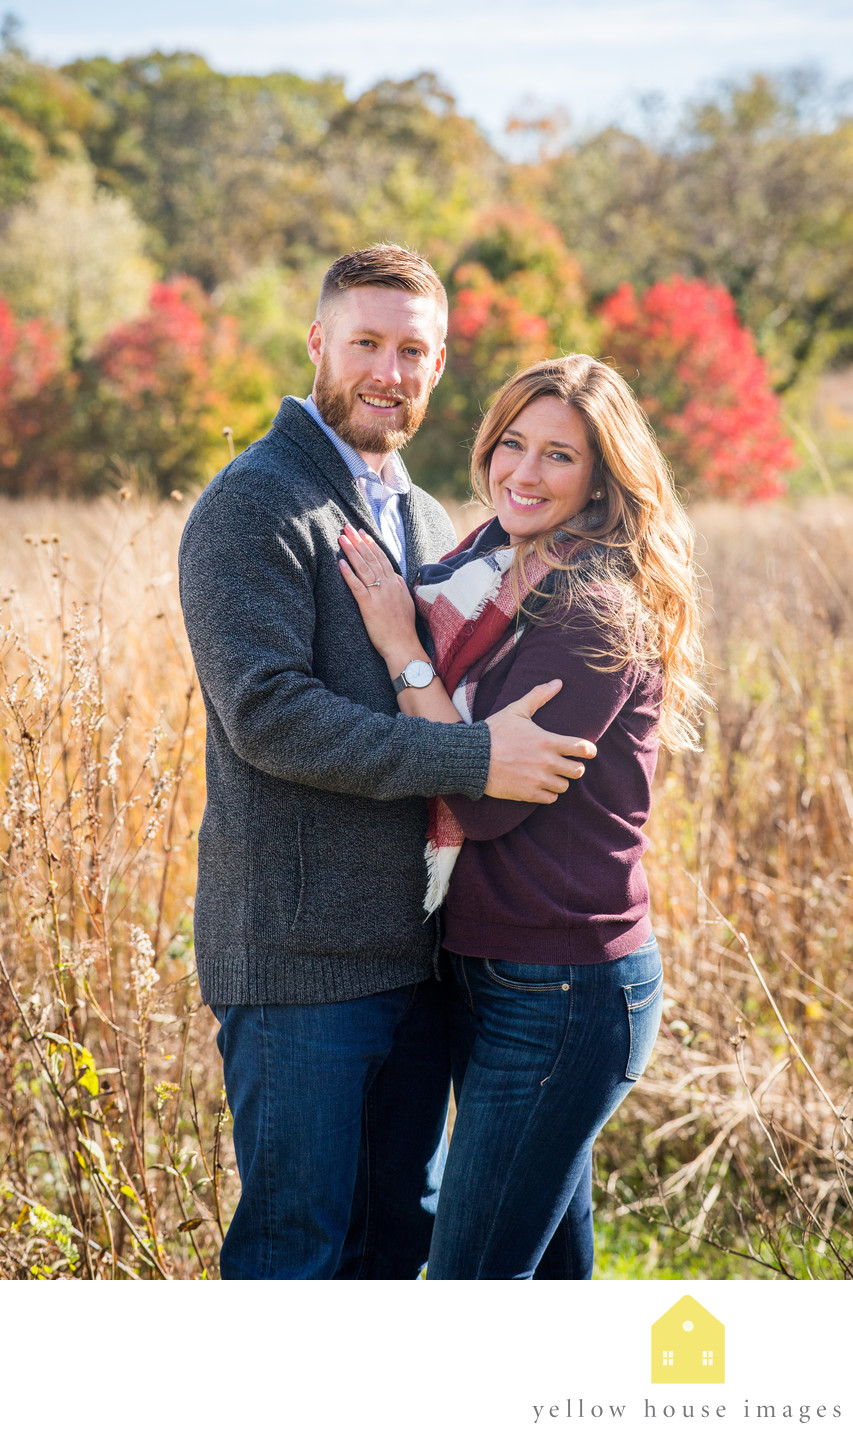 Best Spots on Long Island for Engagement Photography